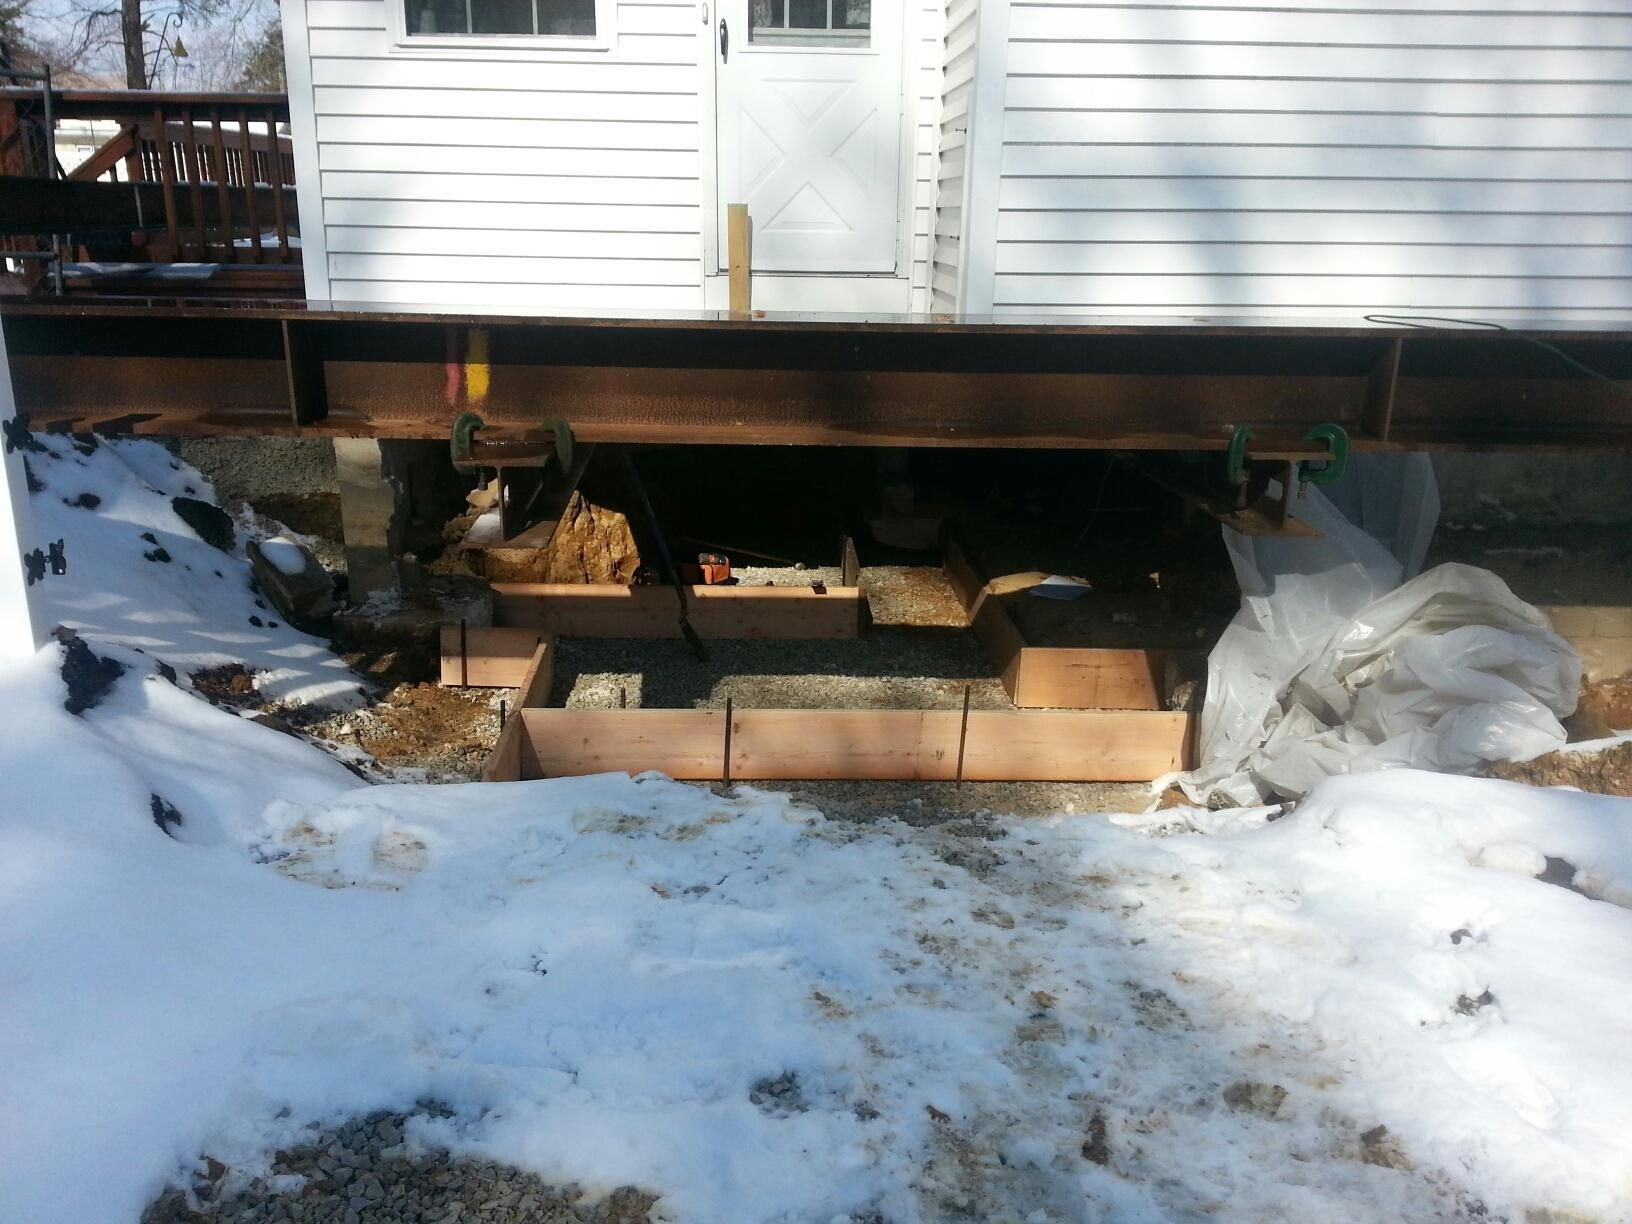 After clean up, and level ground, new foundation for residence  #meridianenvironmental #foundation #house #home #nj